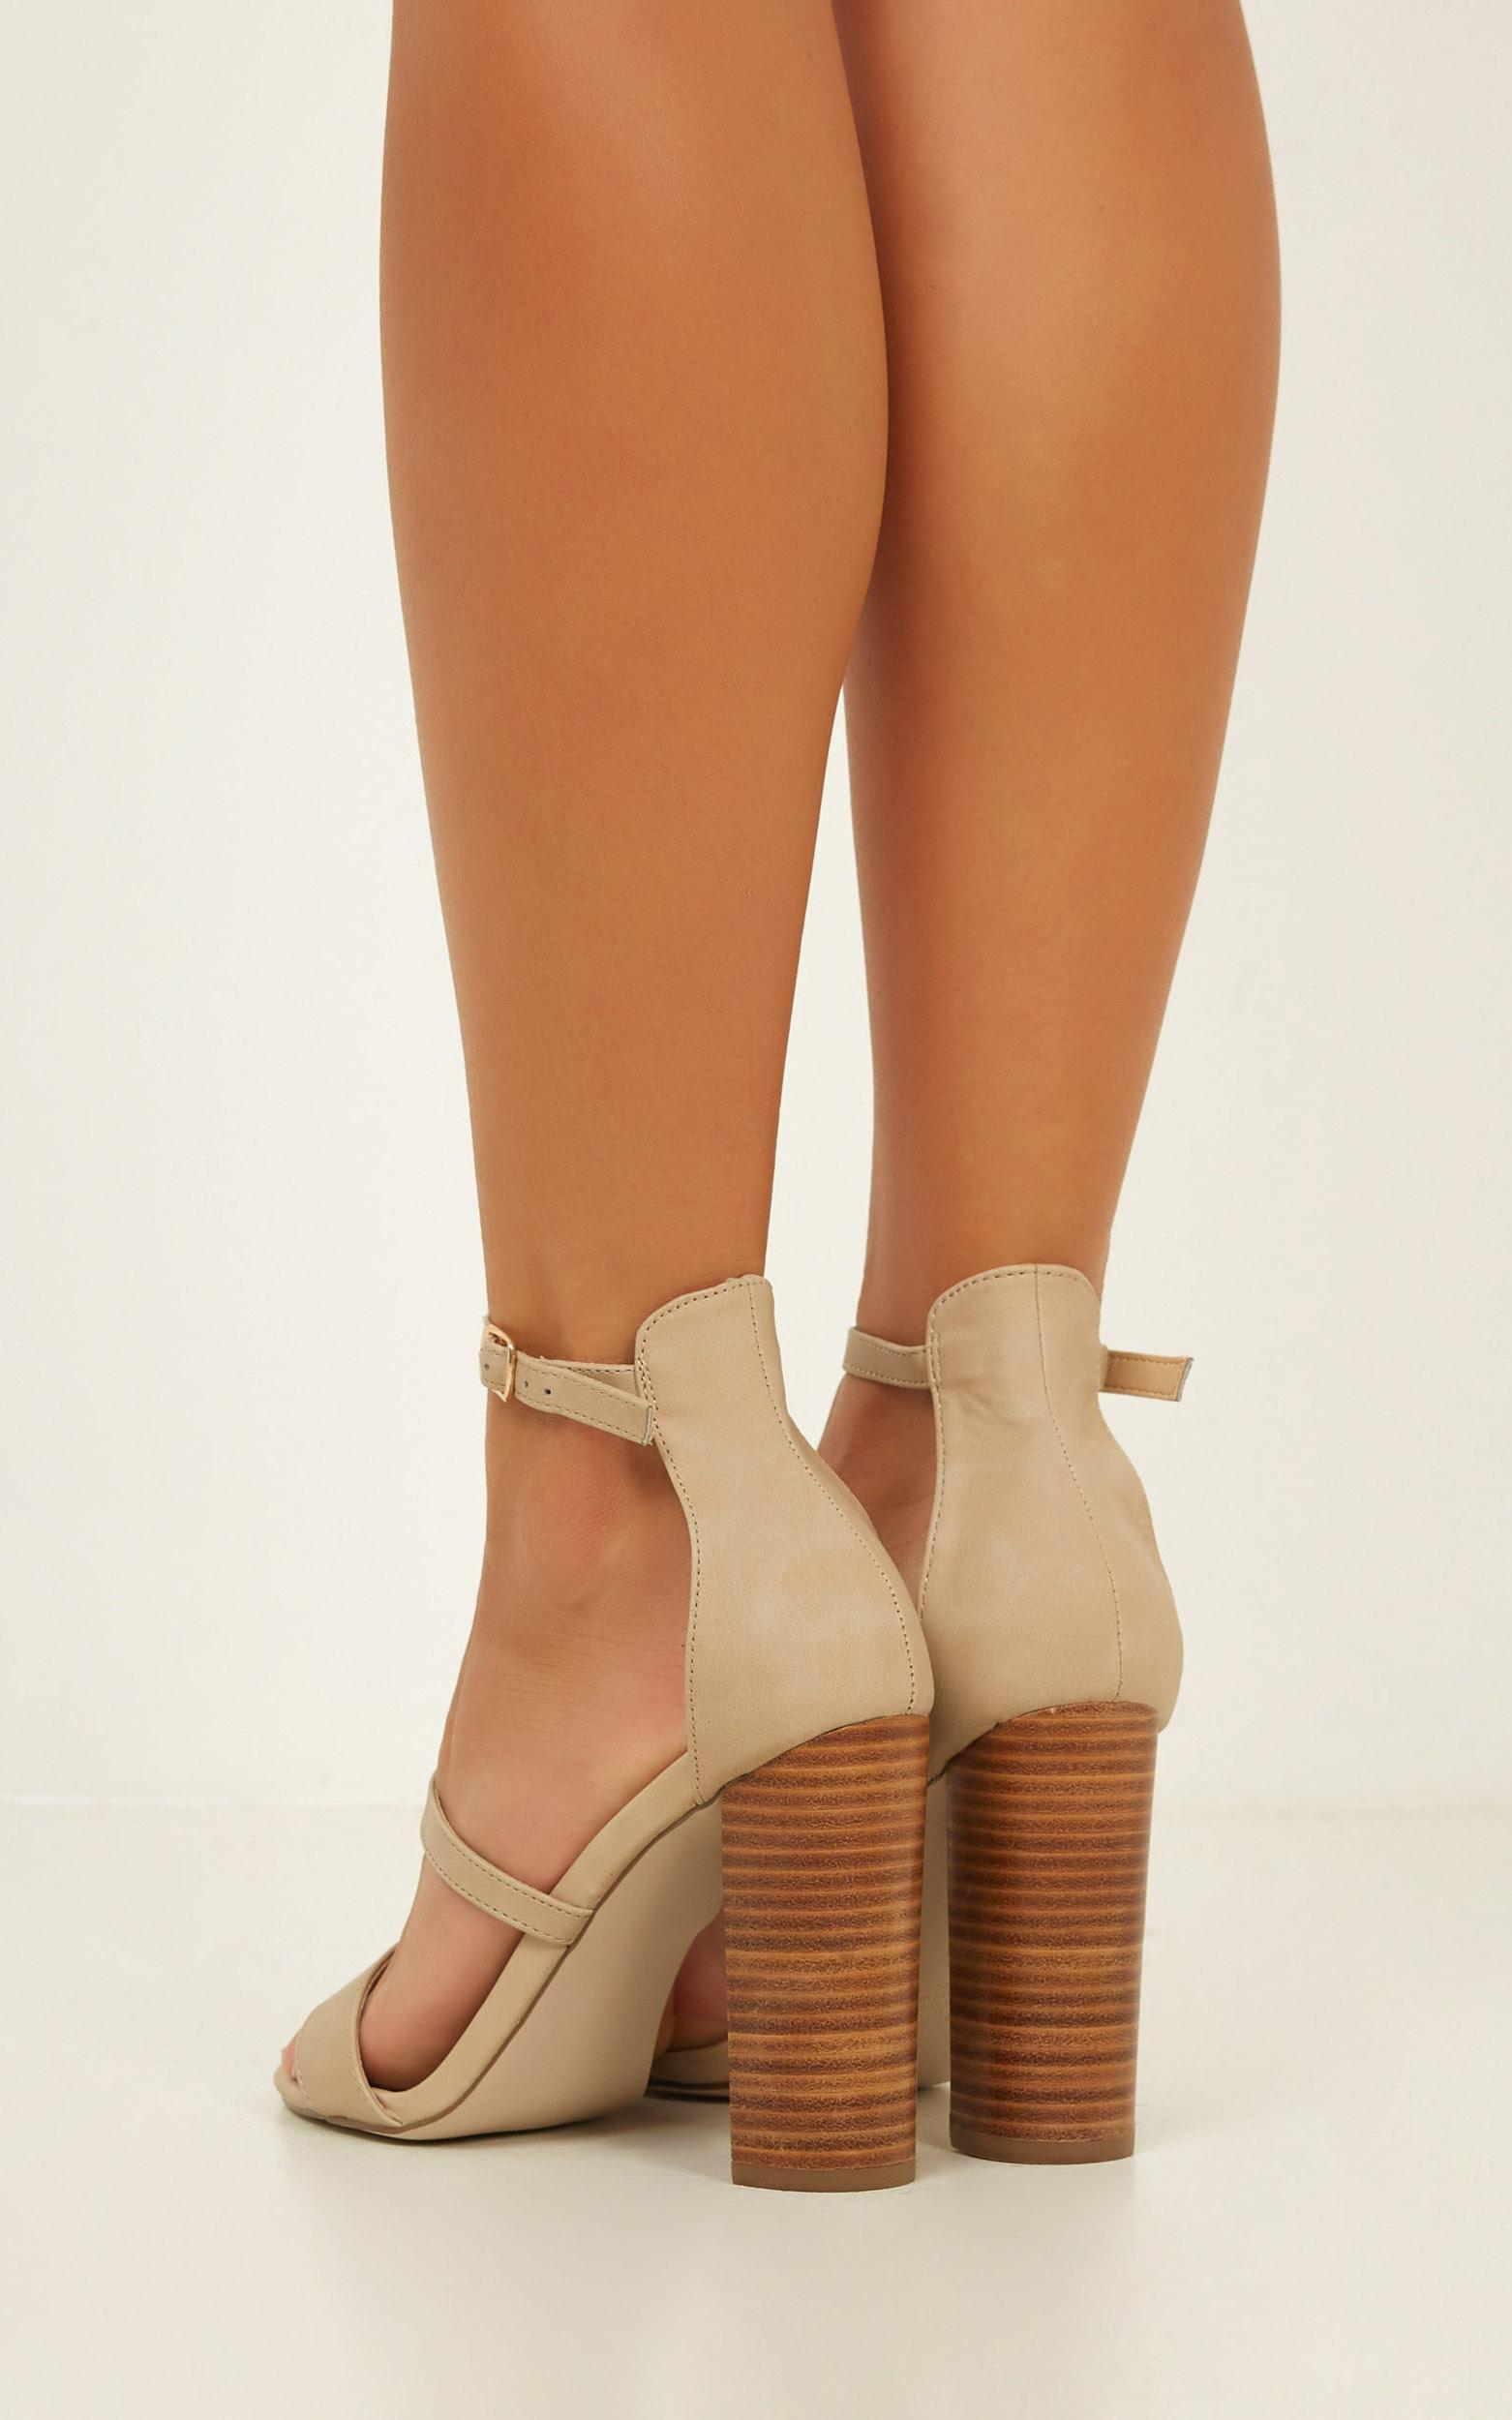 Verali - Bubba heels in natural, Beige, hi-res image number null